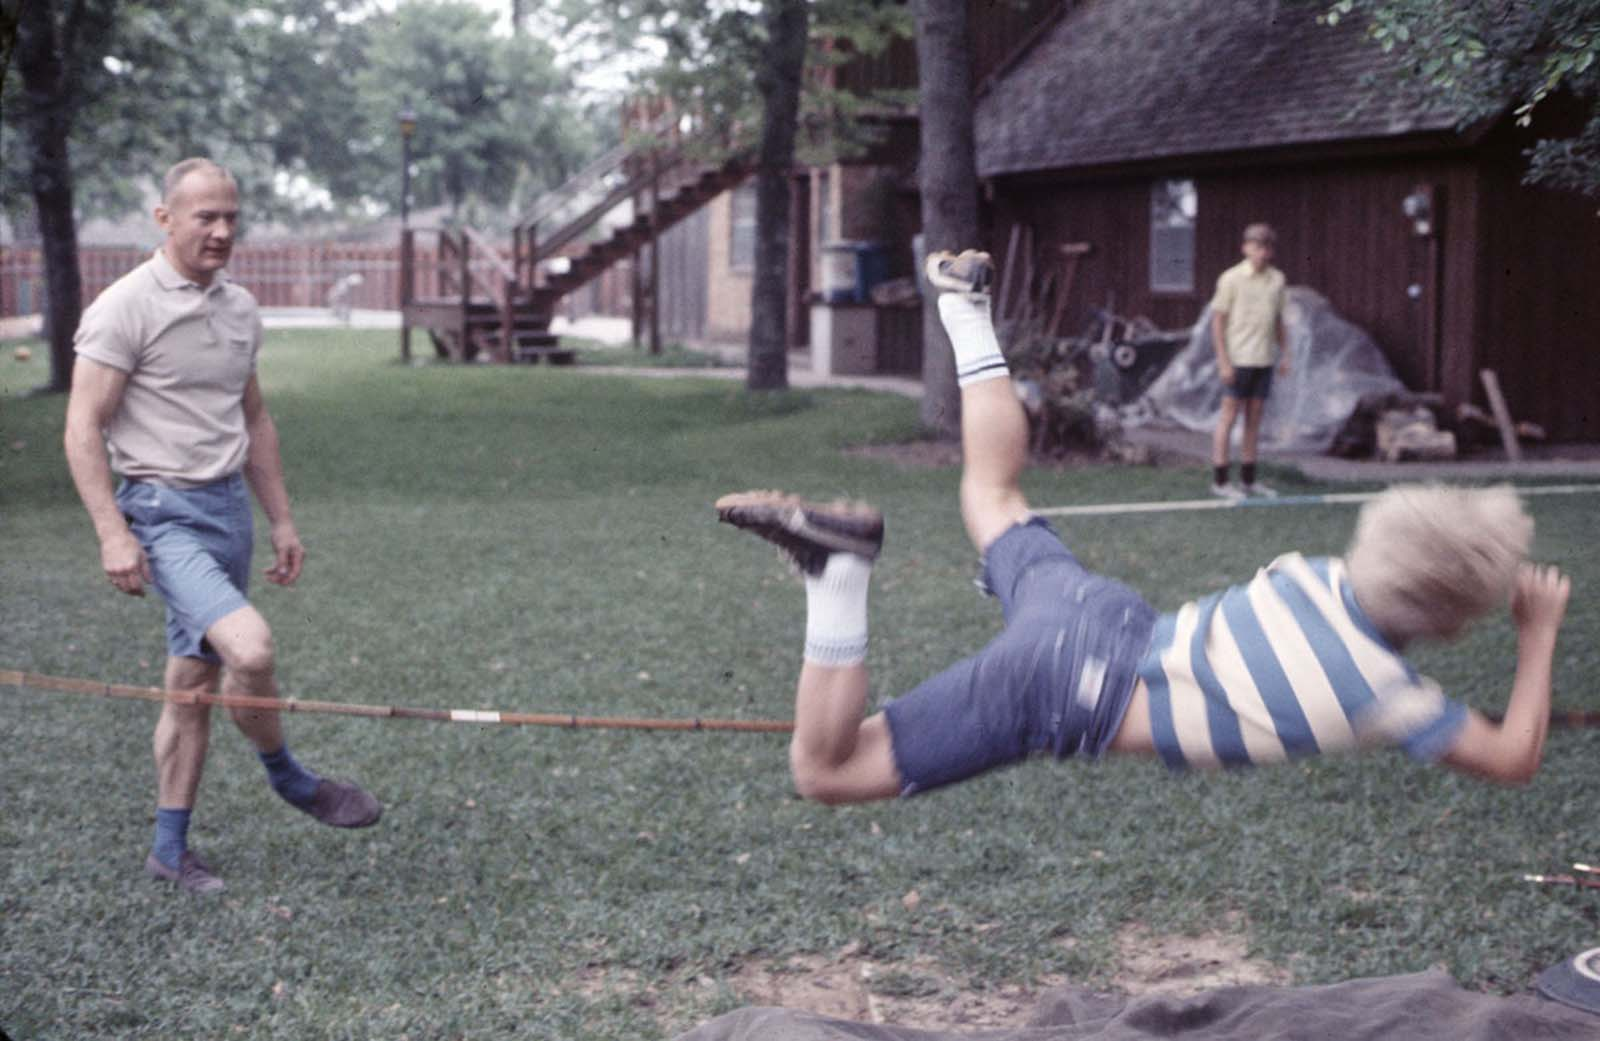 Buzz Aldrin and his sons practice pole vaulting at his Texas home.